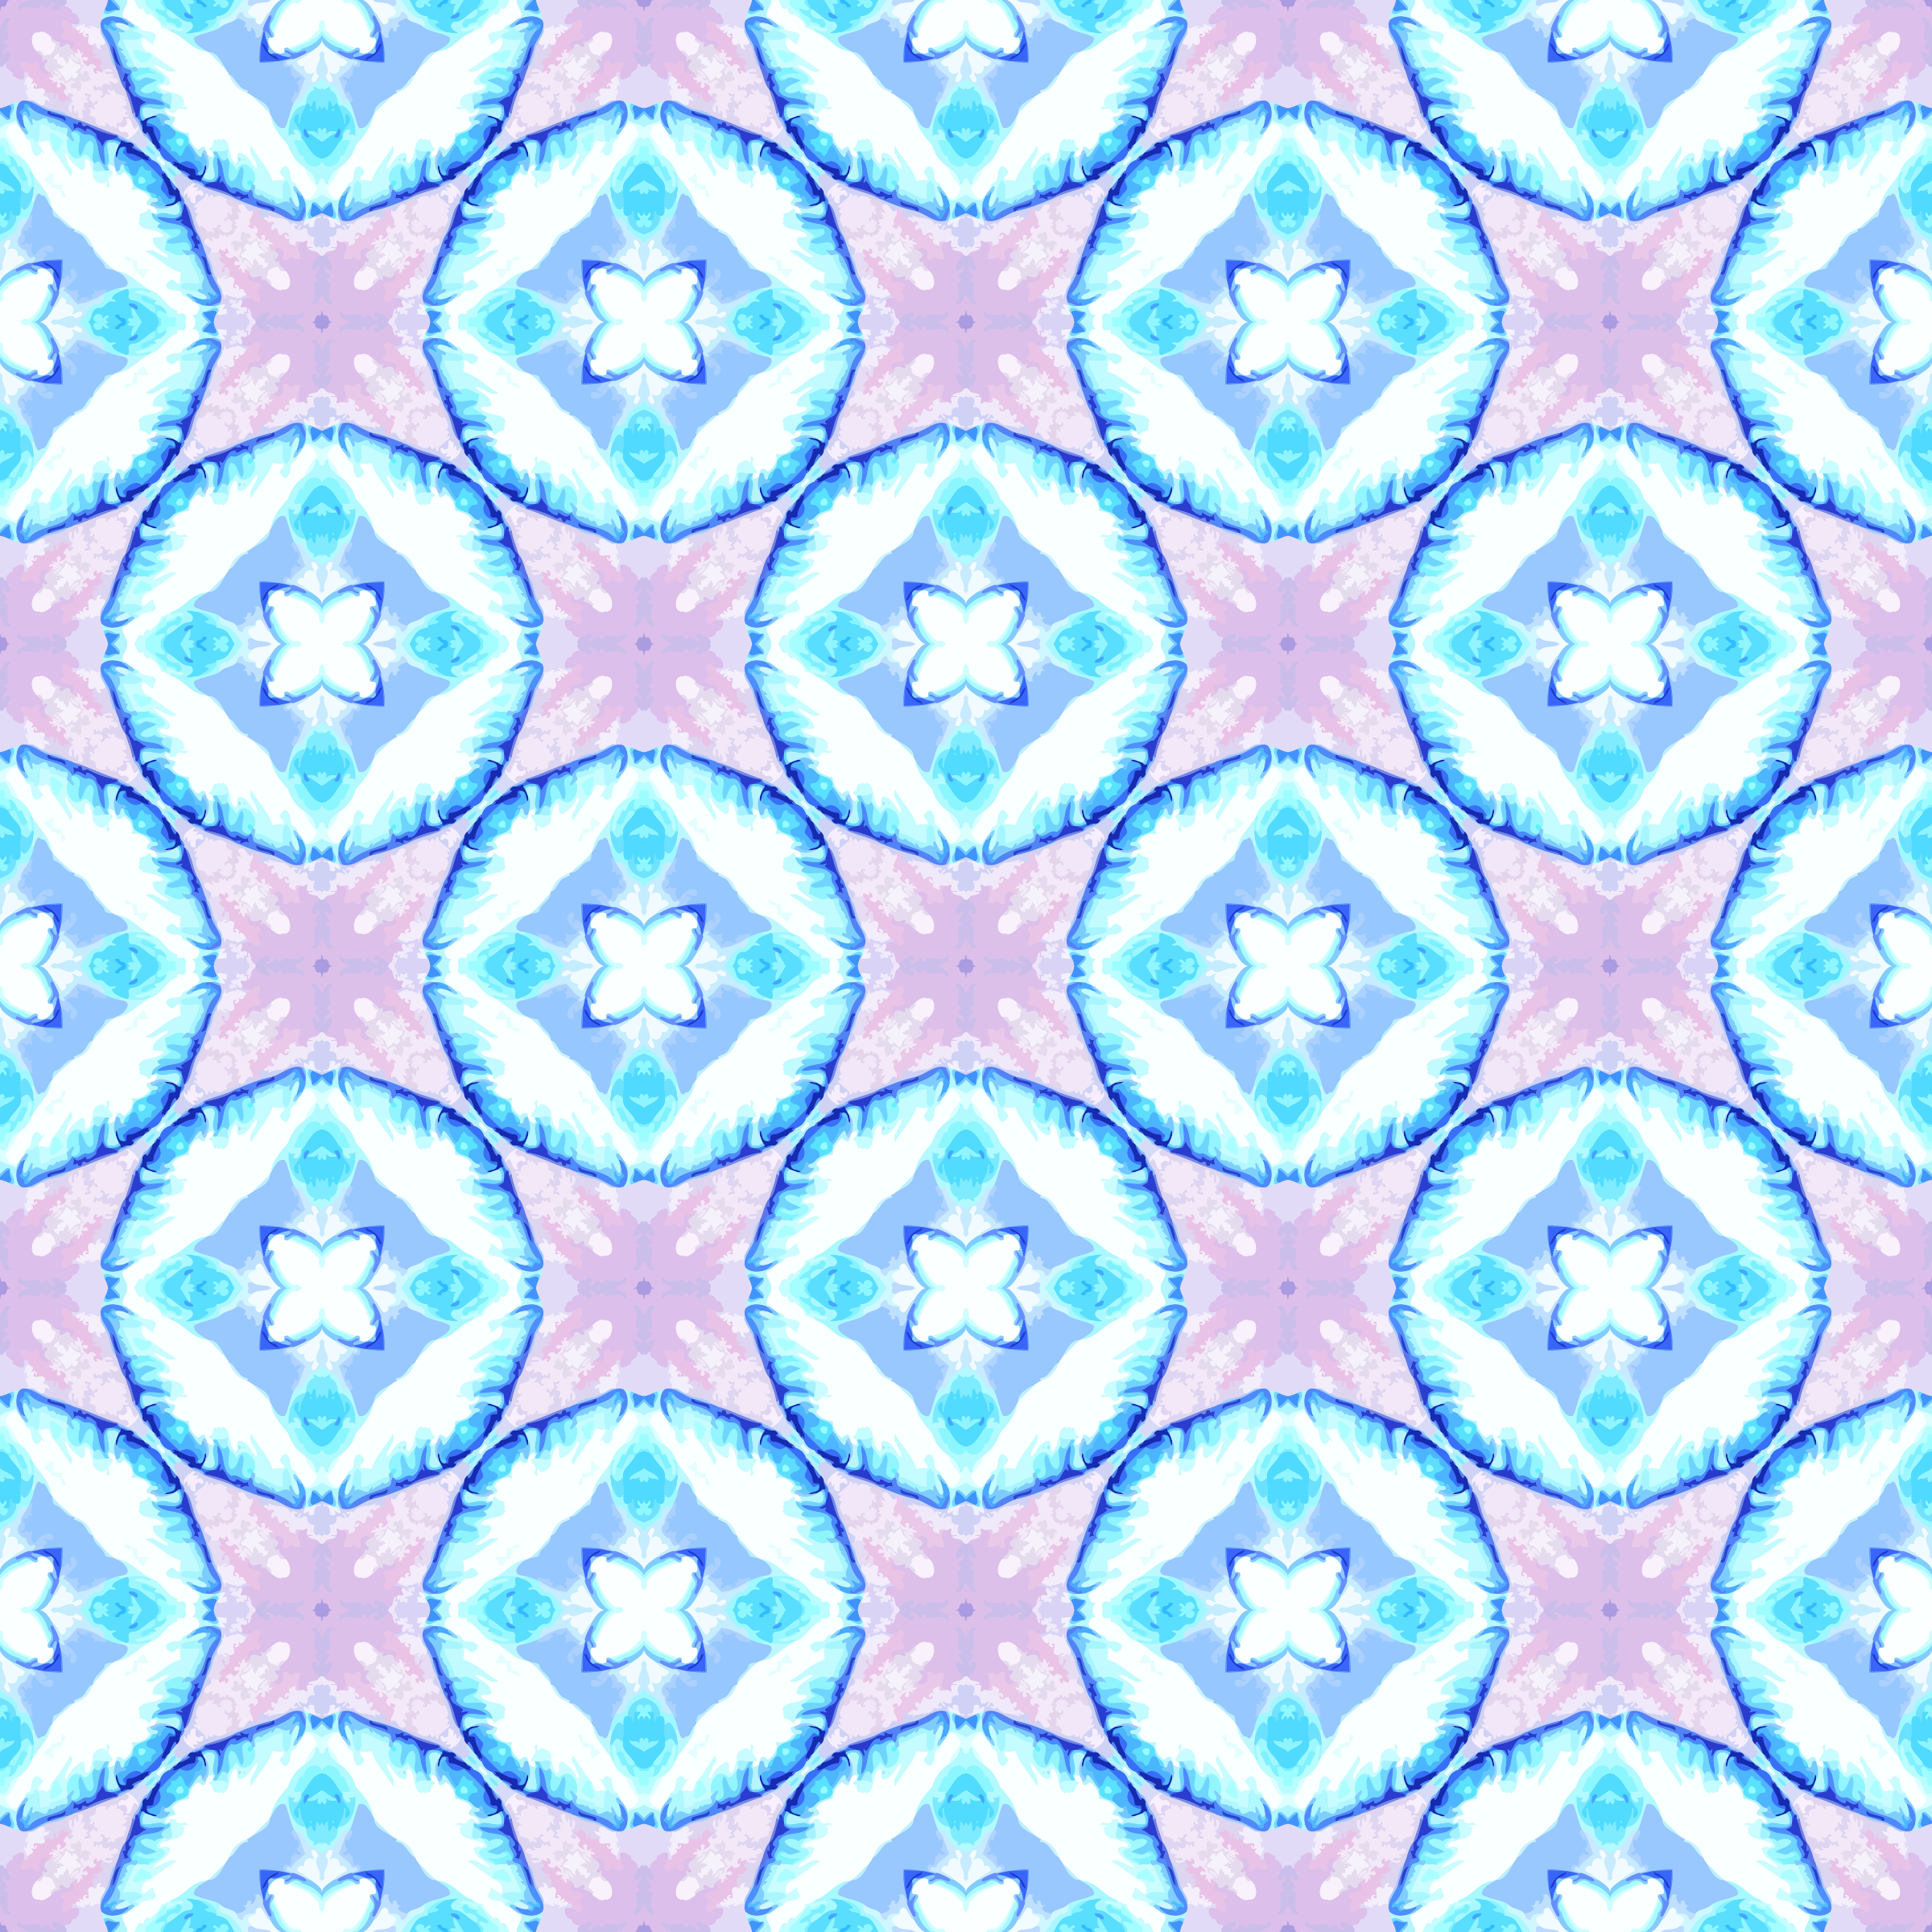 Background pattern 142 (colour 5) by Firkin